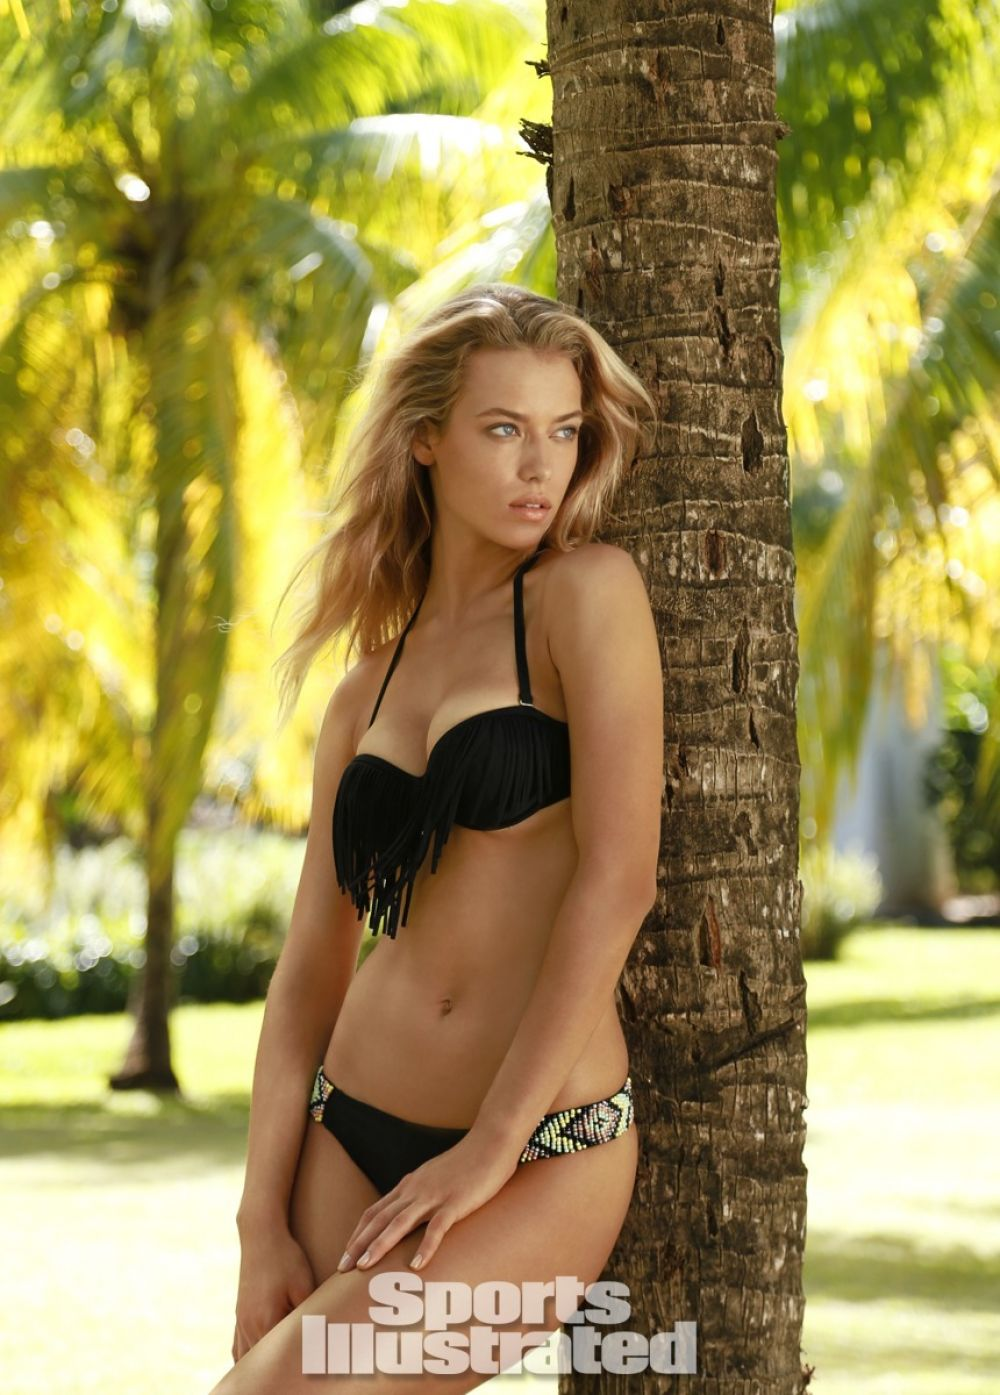 hannah-ferguson-in-sports-illustrated-2014-swimsuit-issue_15.jpg - 184.35 KB